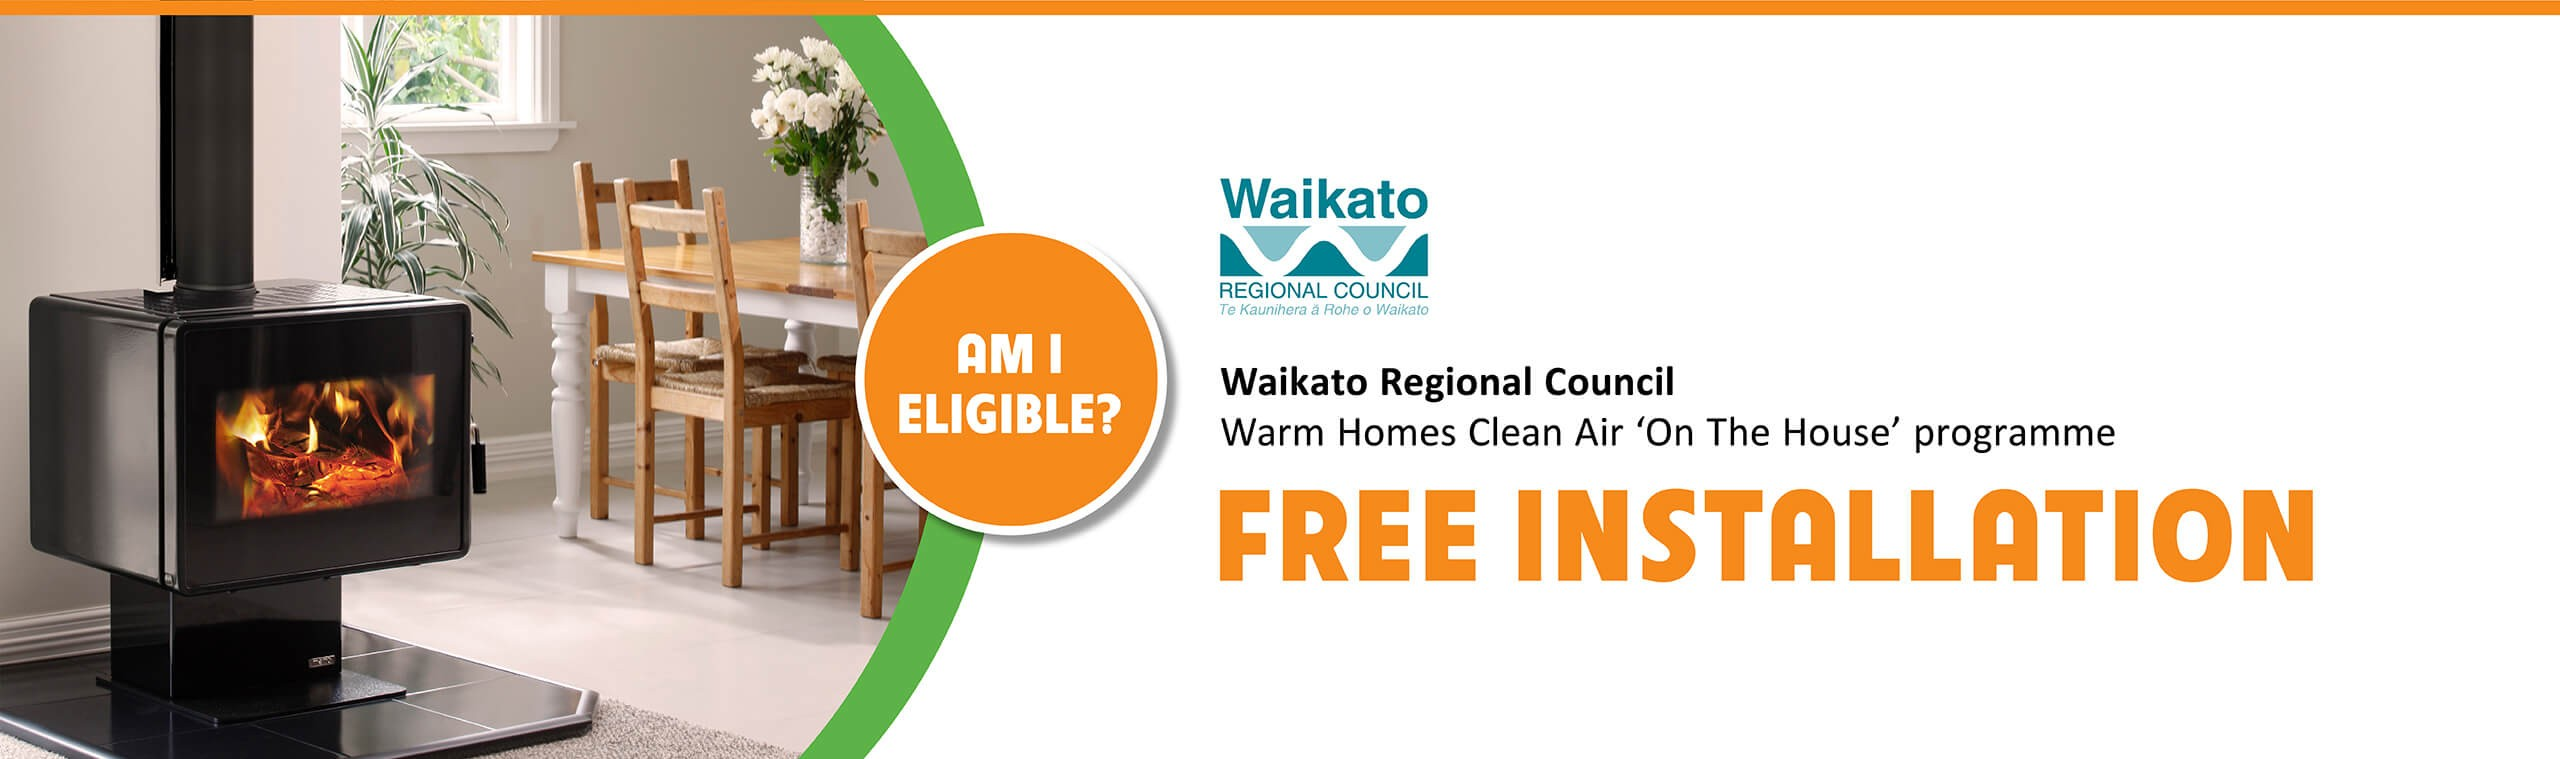 Warm_Homes_Clean_Air_Free_Installation_Home__Banner_Final.indd.jpg